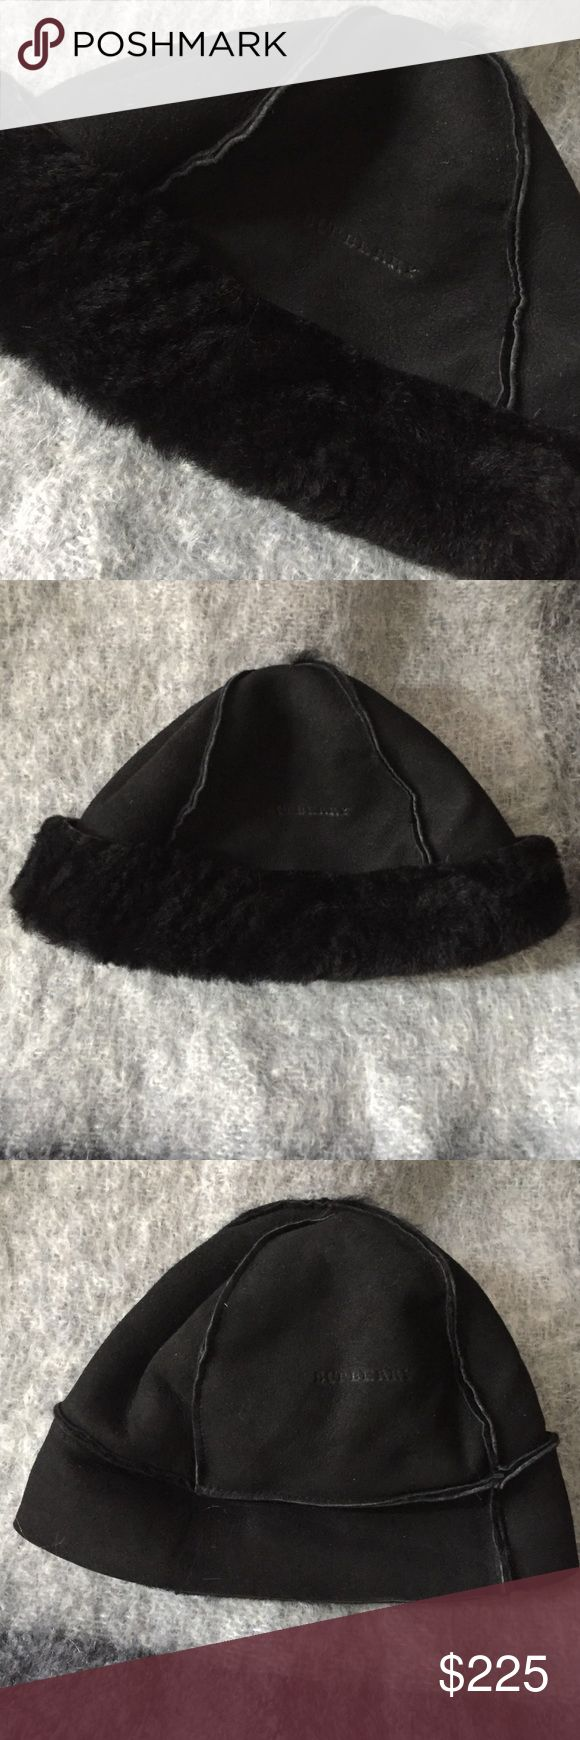 "Burberry Shearling Hat I bought this a number of years ago at a Burberry store. I wore it for about 15 minutes when I remembered why I don't like wearing hats. It has been in my coat closet since.🙄It is one size fits all, but if you have a large head it's not for you. 11"" across(inside) at bottom when rolled up. 7"" crown to bottom rolled 8 1/4"" unrolled. I think it was more than I listed, but still looking for the tag.It's beautiful so don't hesitate. Super versatile! Let me know if you…"